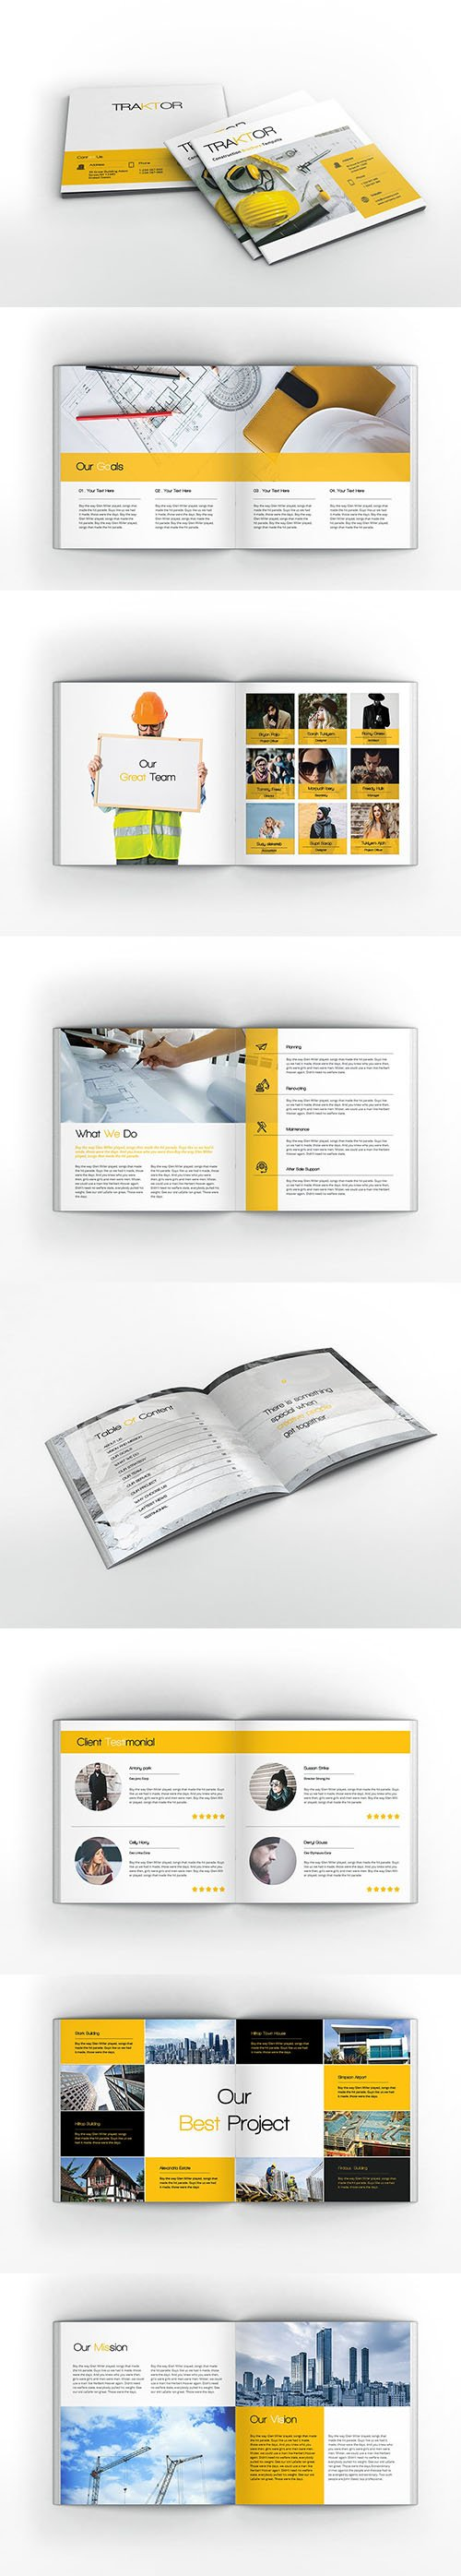 Construction Square Indesign Brochure